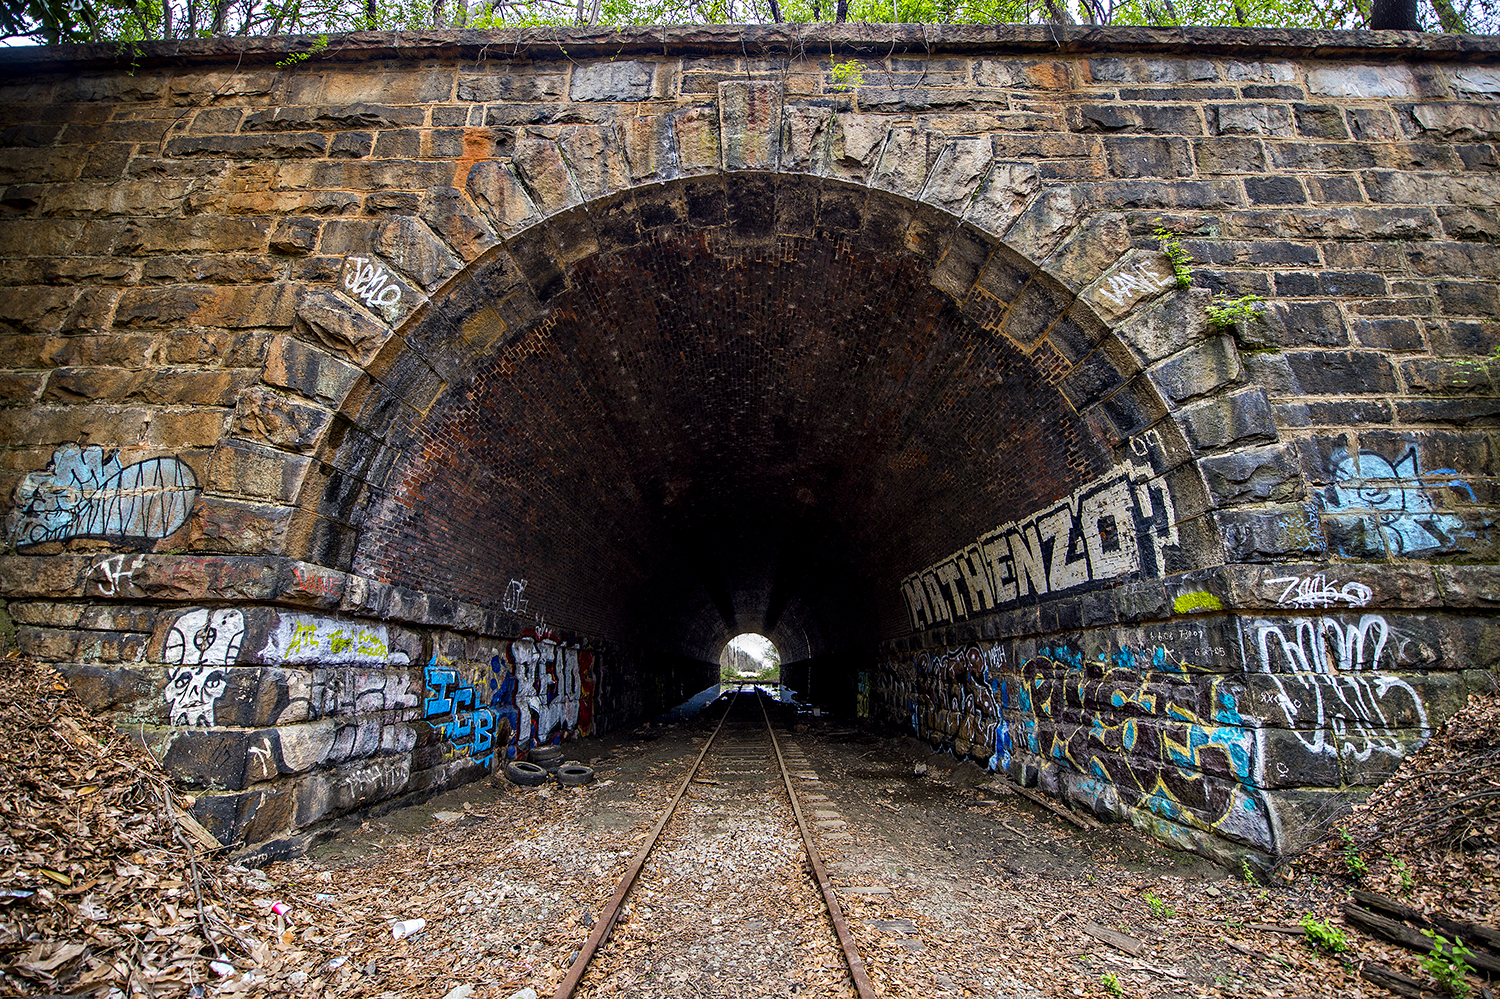 This stone bridge with an active rail line above could be an iconic Beltline site one day.